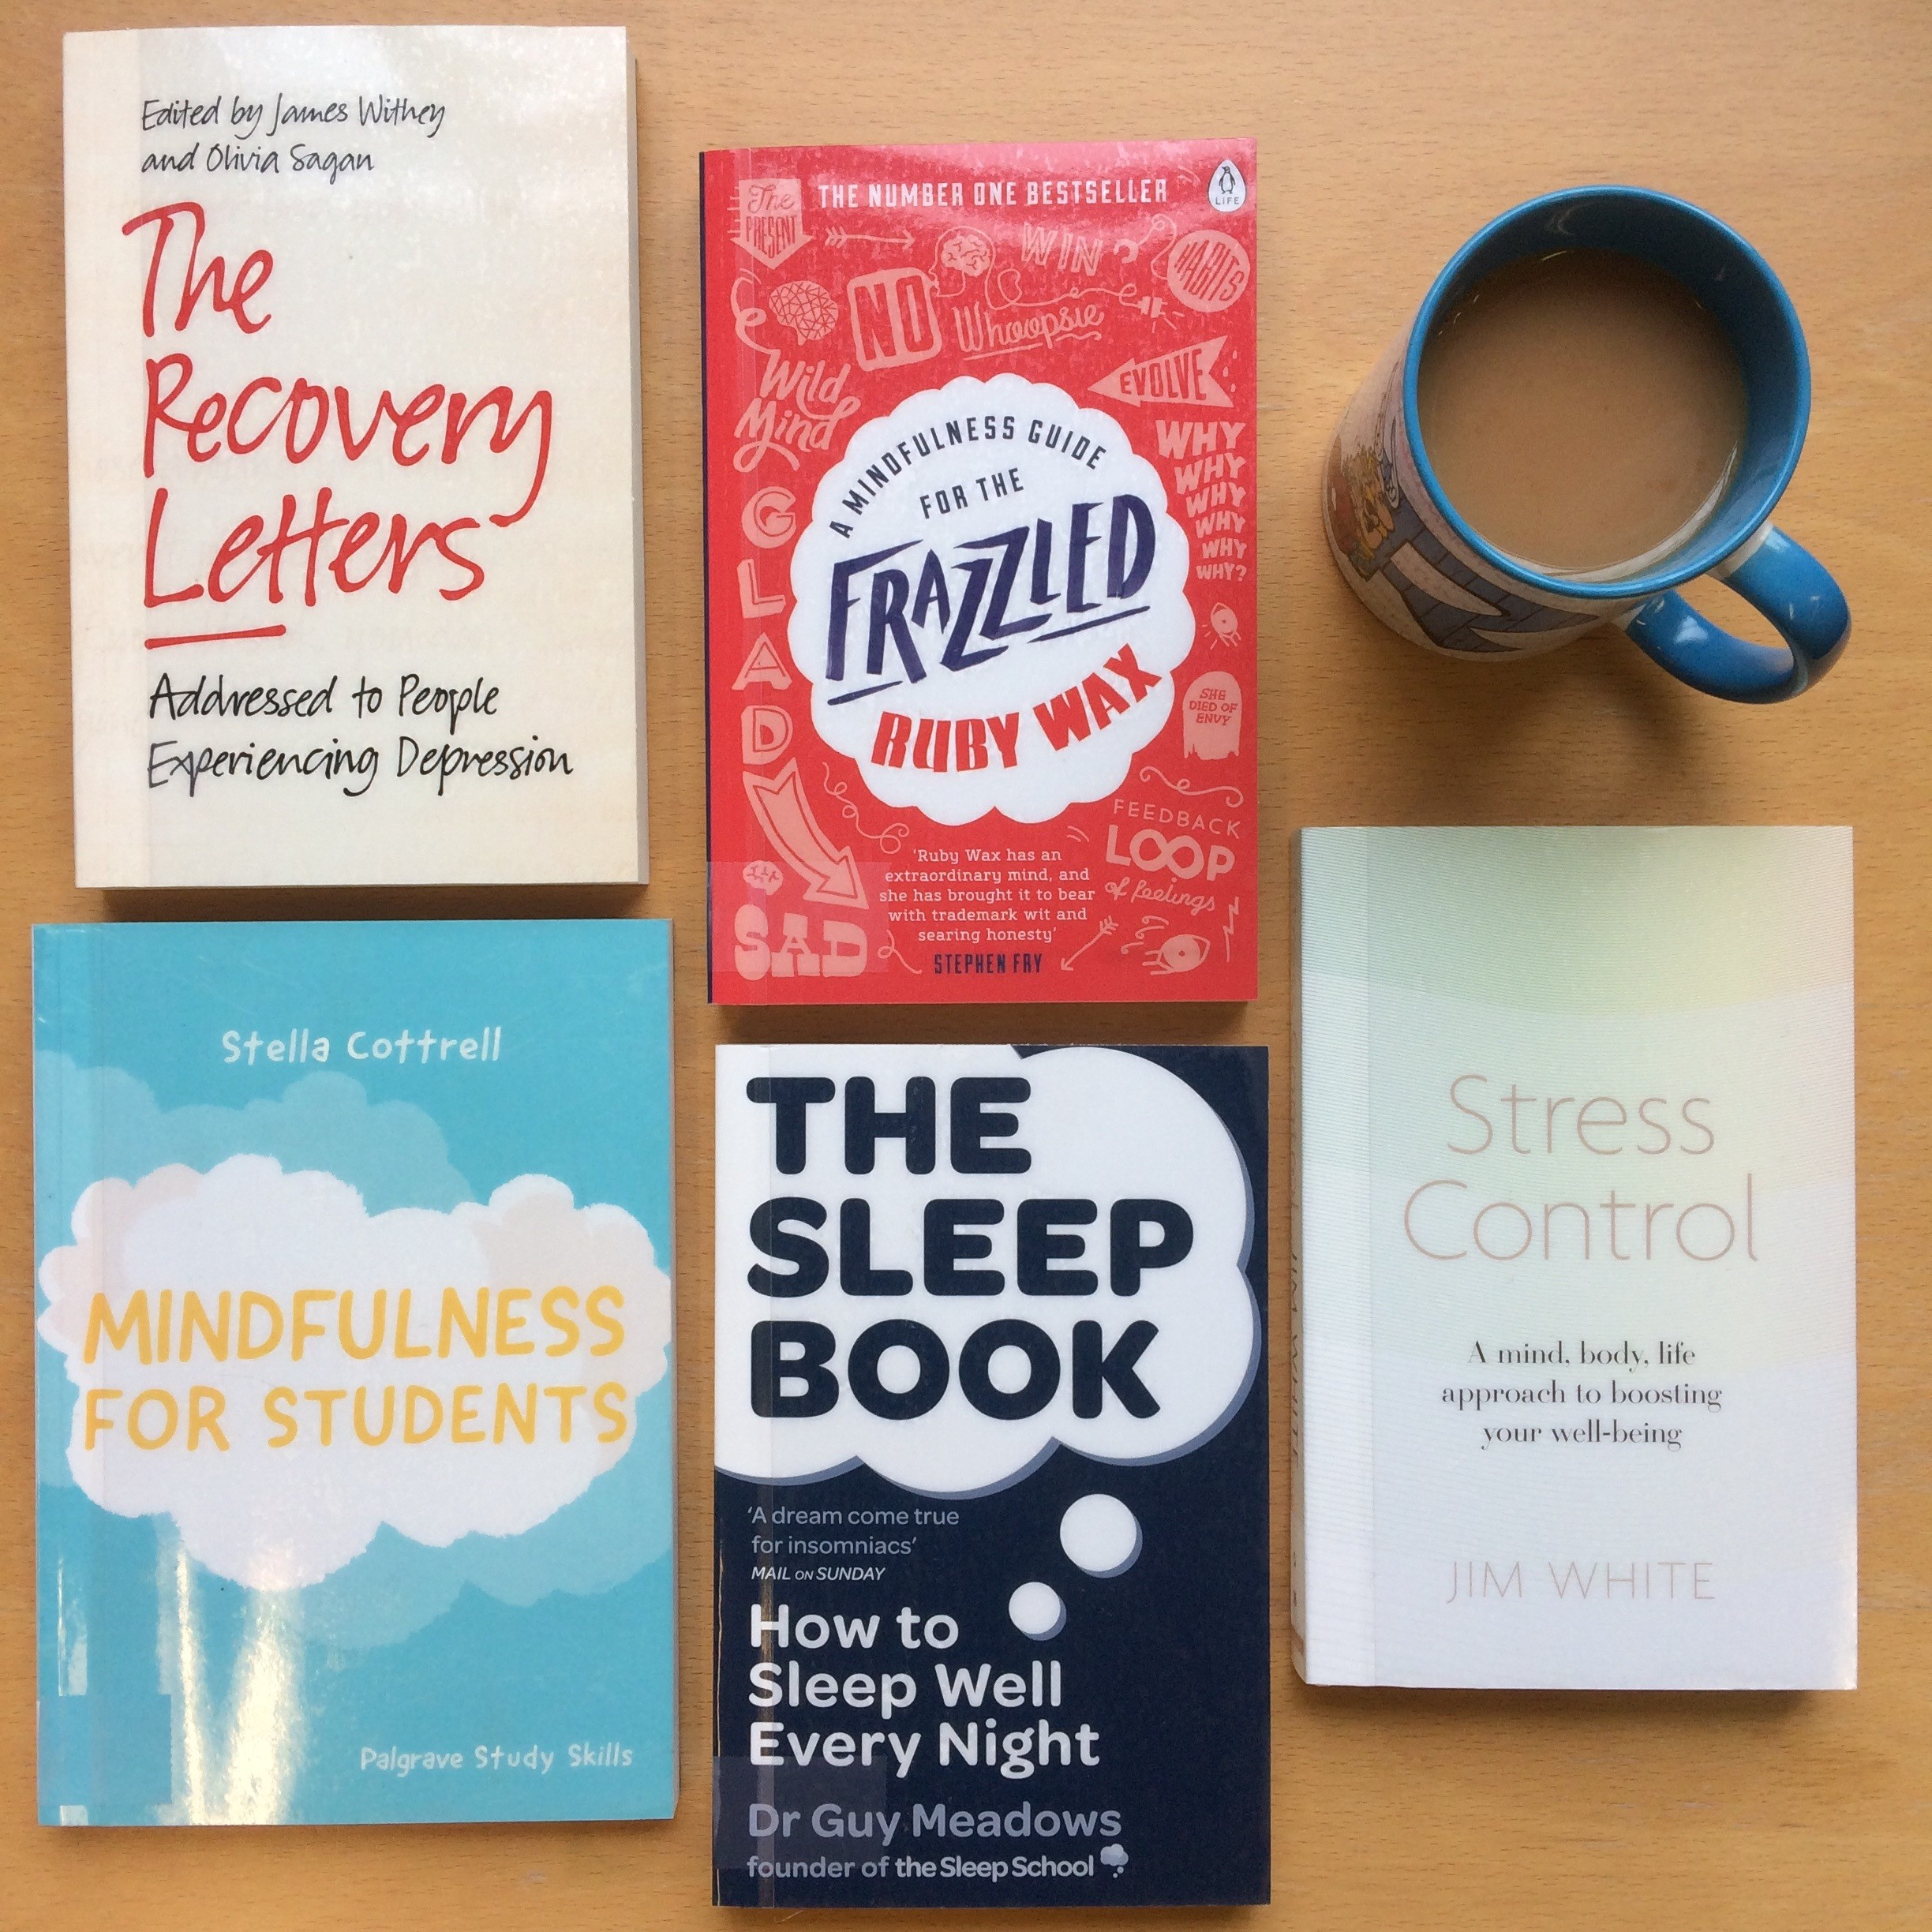 Colour collage of a tea mug and the books lying on the table: 'The Sleep book', 'The Recovery Letters', 'Stress Control', 'Mindfullness for students'